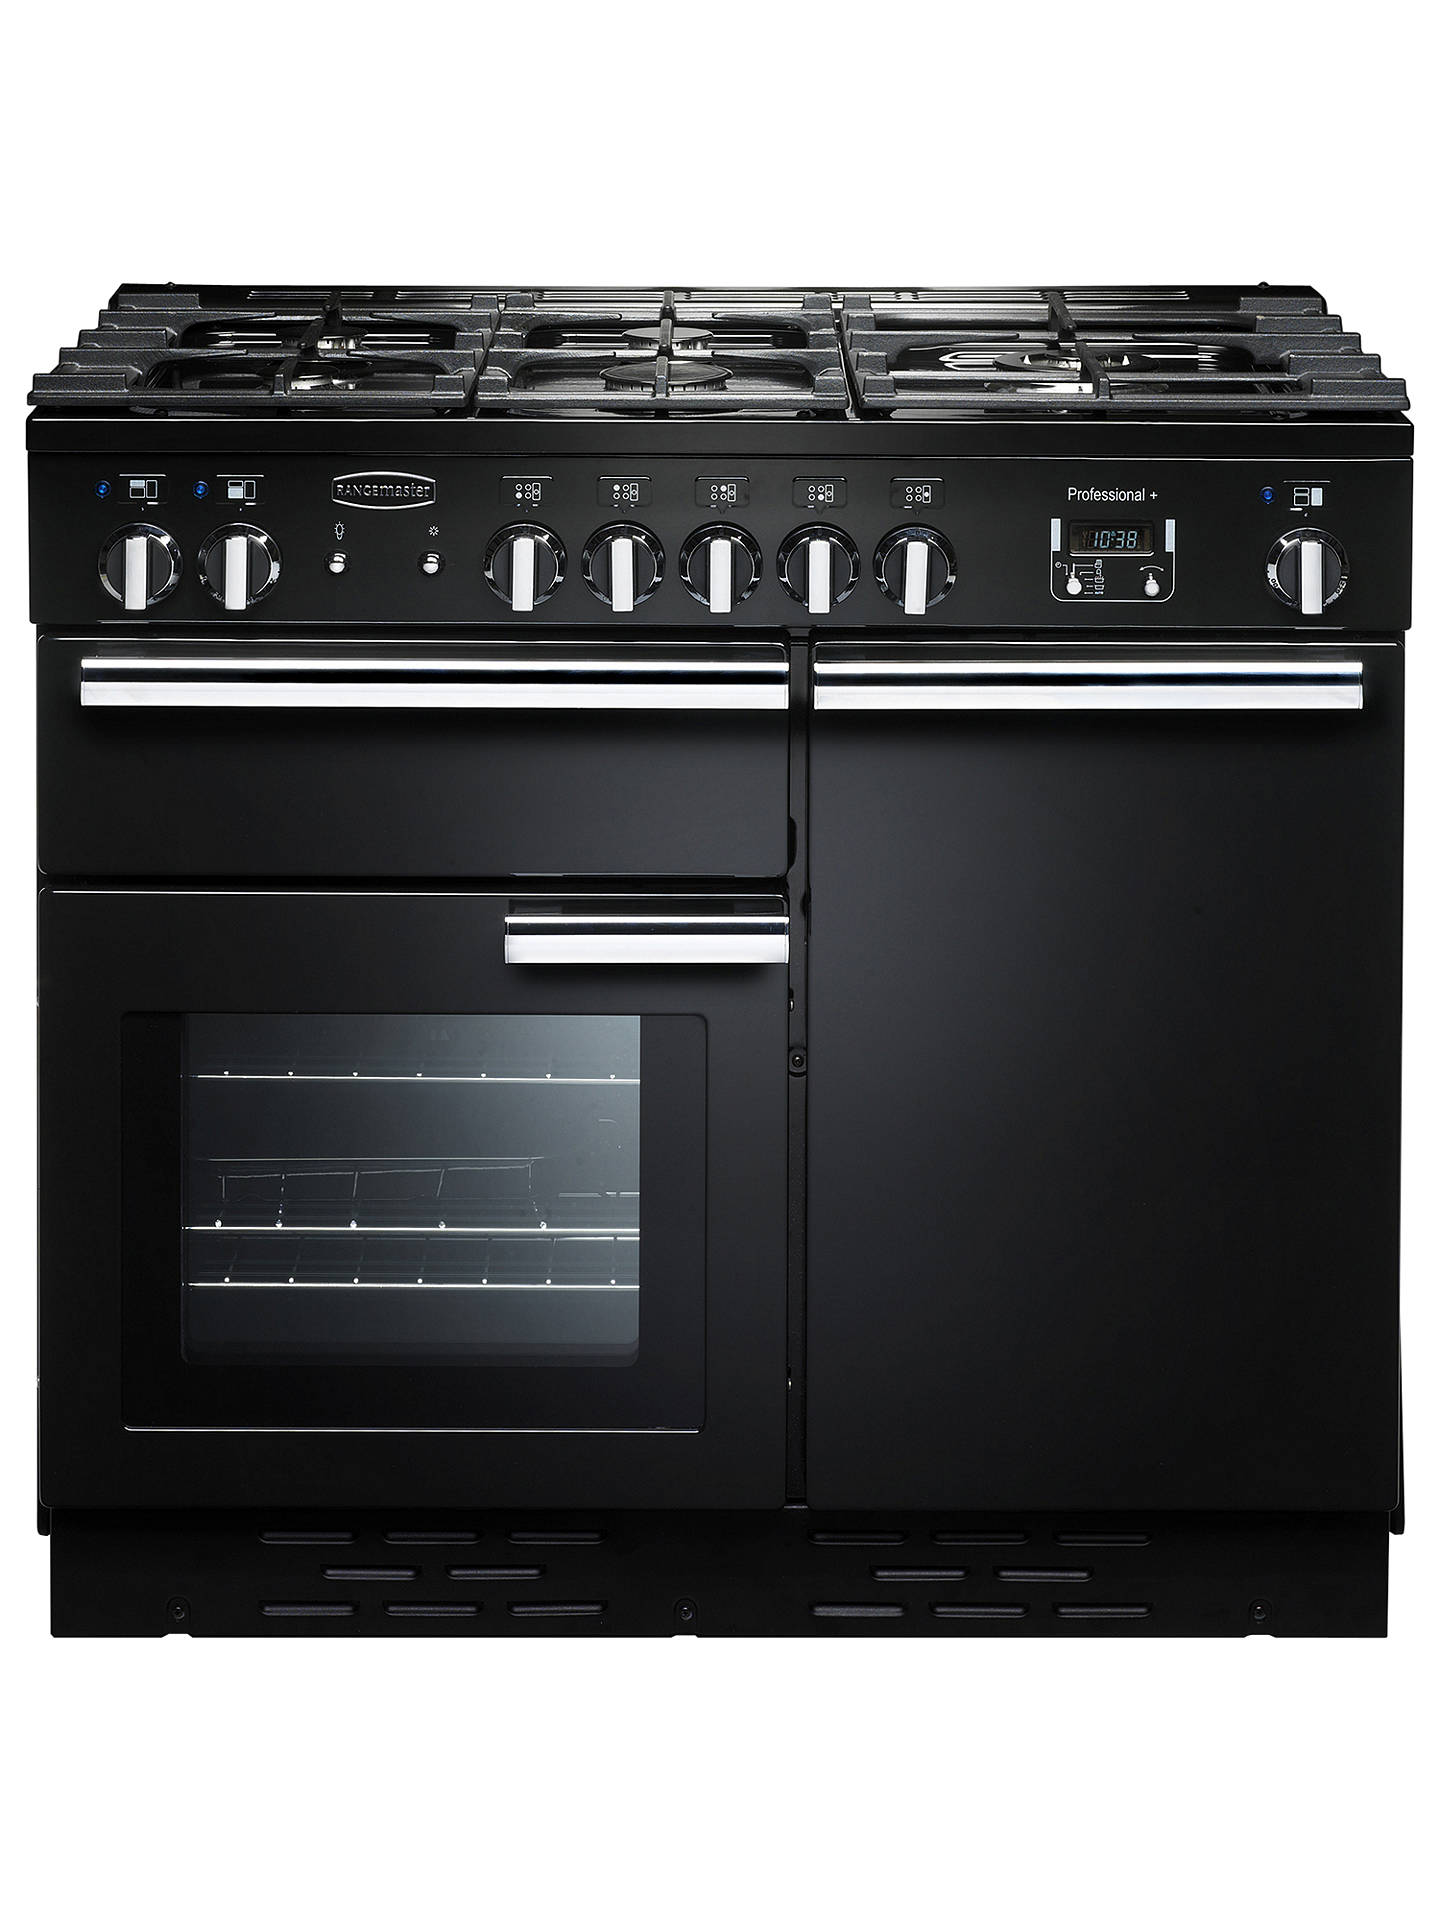 BuyRangemaster Professional + 100 Dual Fuel Range Cooker, Black/Chrome Trim Online at johnlewis.com